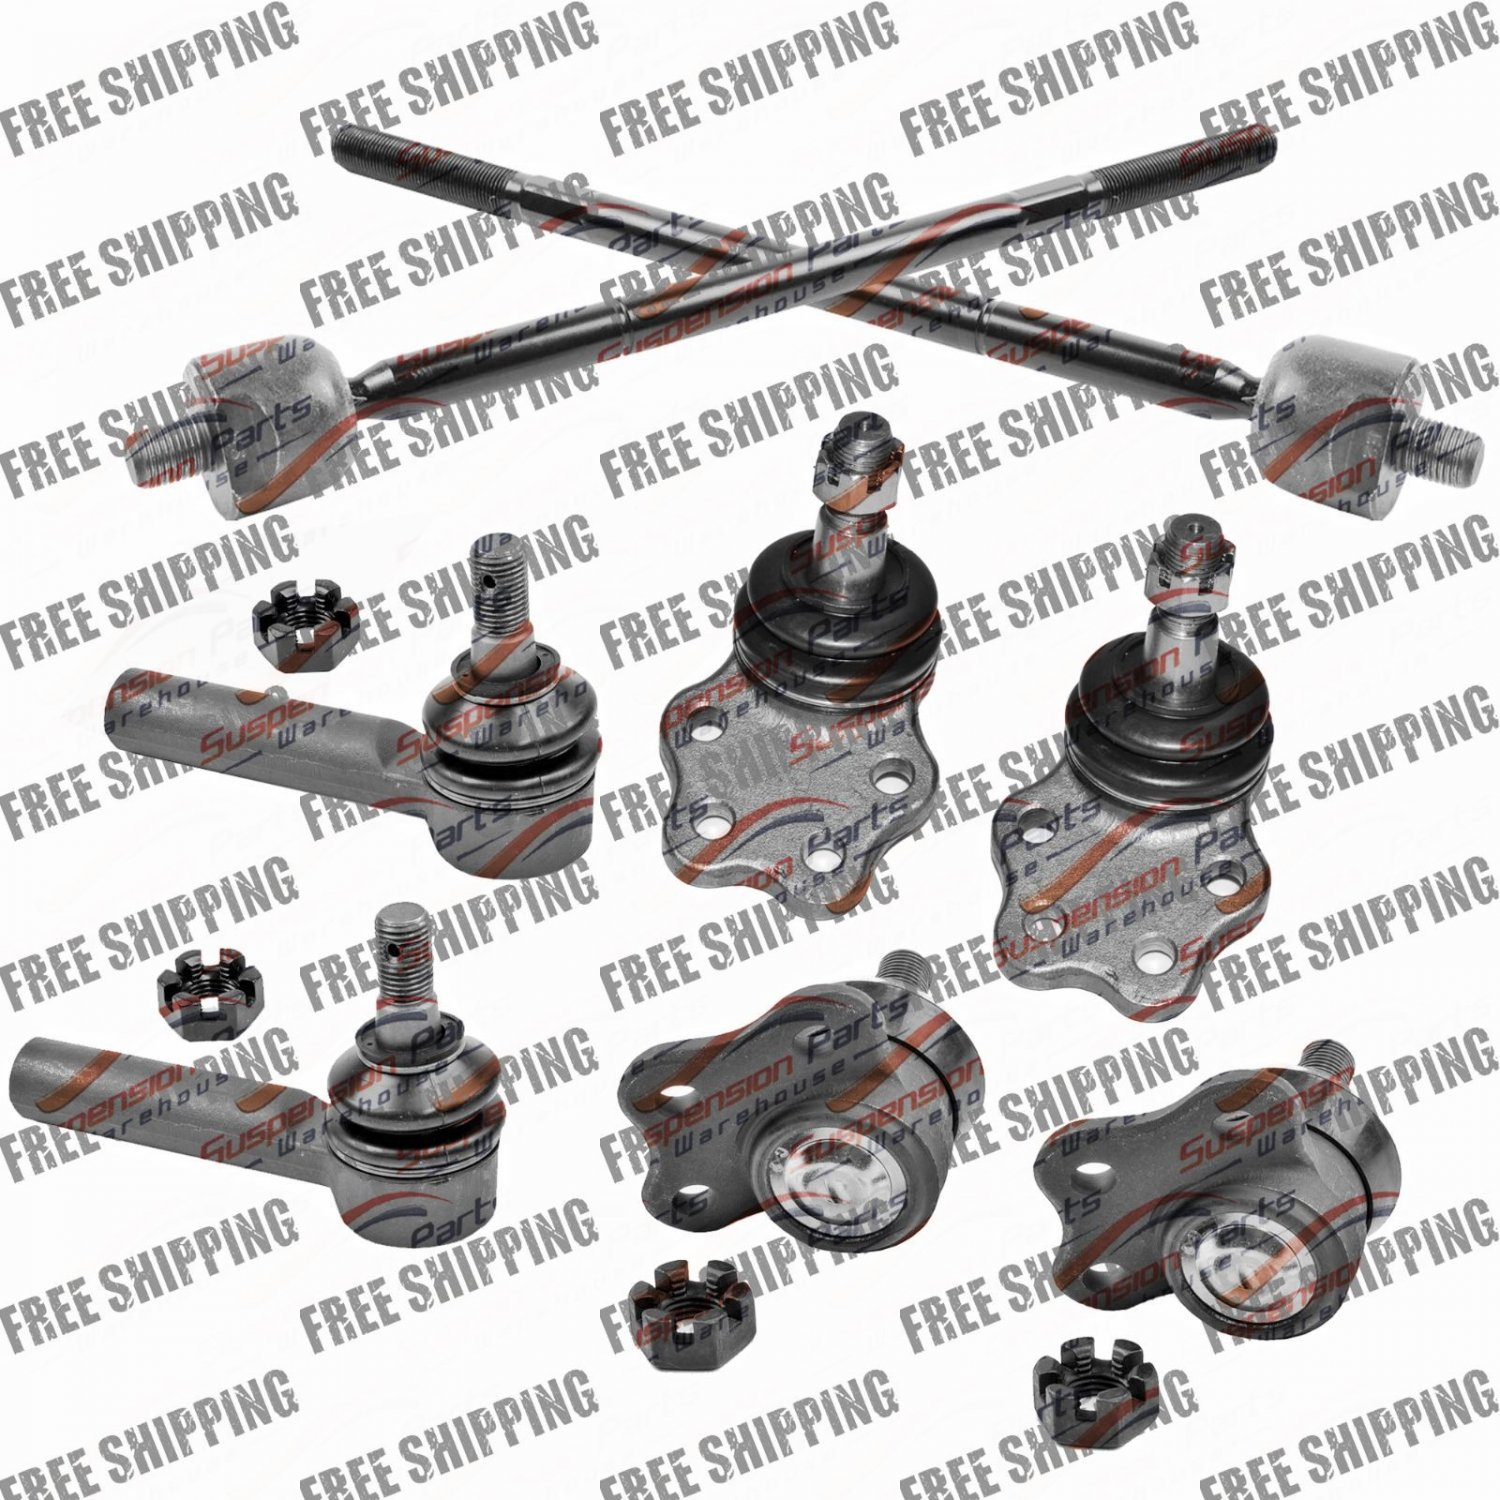 New Steering Kit Front End Tie Rod End Ball Joints For 2WD Dodge Dakota 99-97